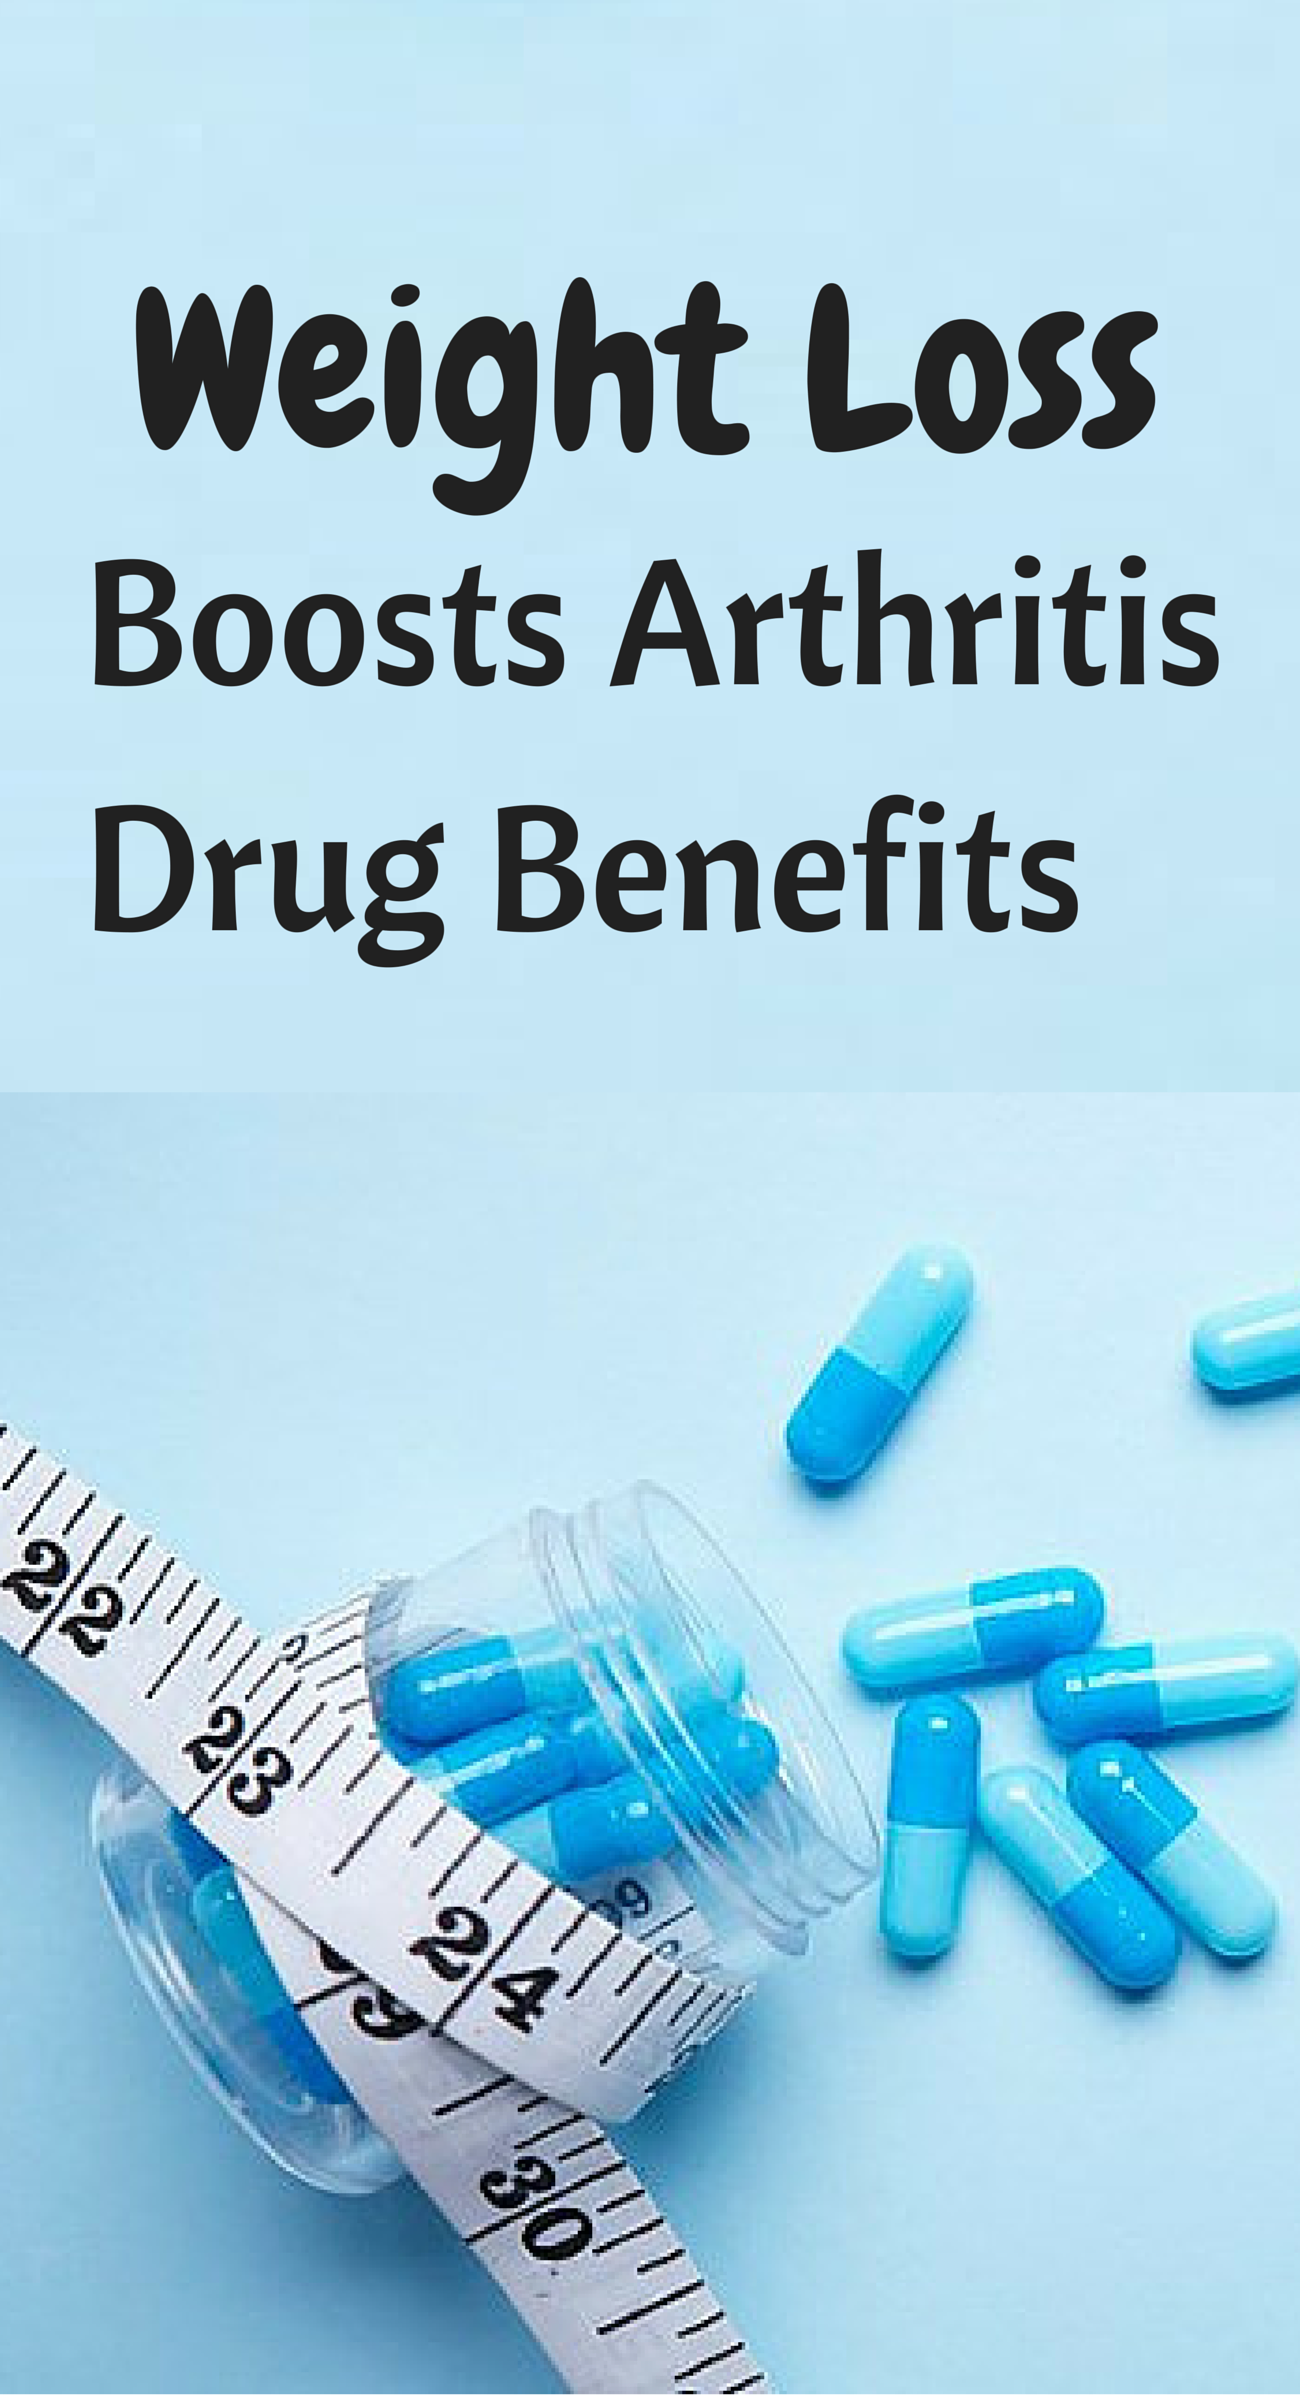 5 Percent Weight Loss Boosts Psoriatic Arthritis Drug Benefits